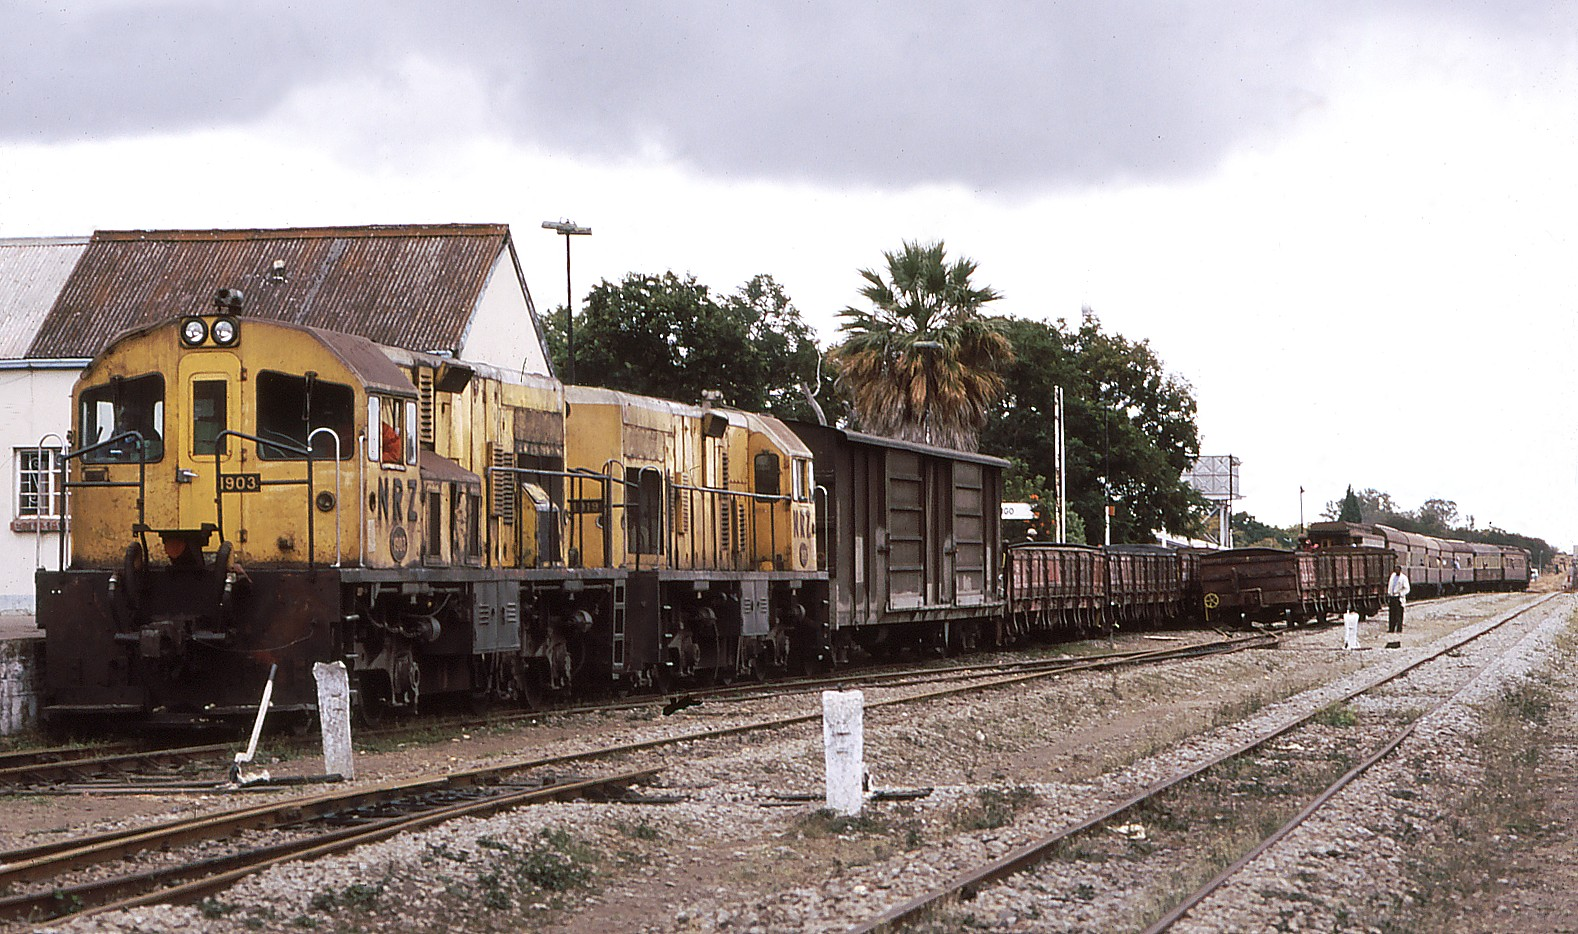 NRZ 1903+1919 Masvingo 4th July 2007.jpg